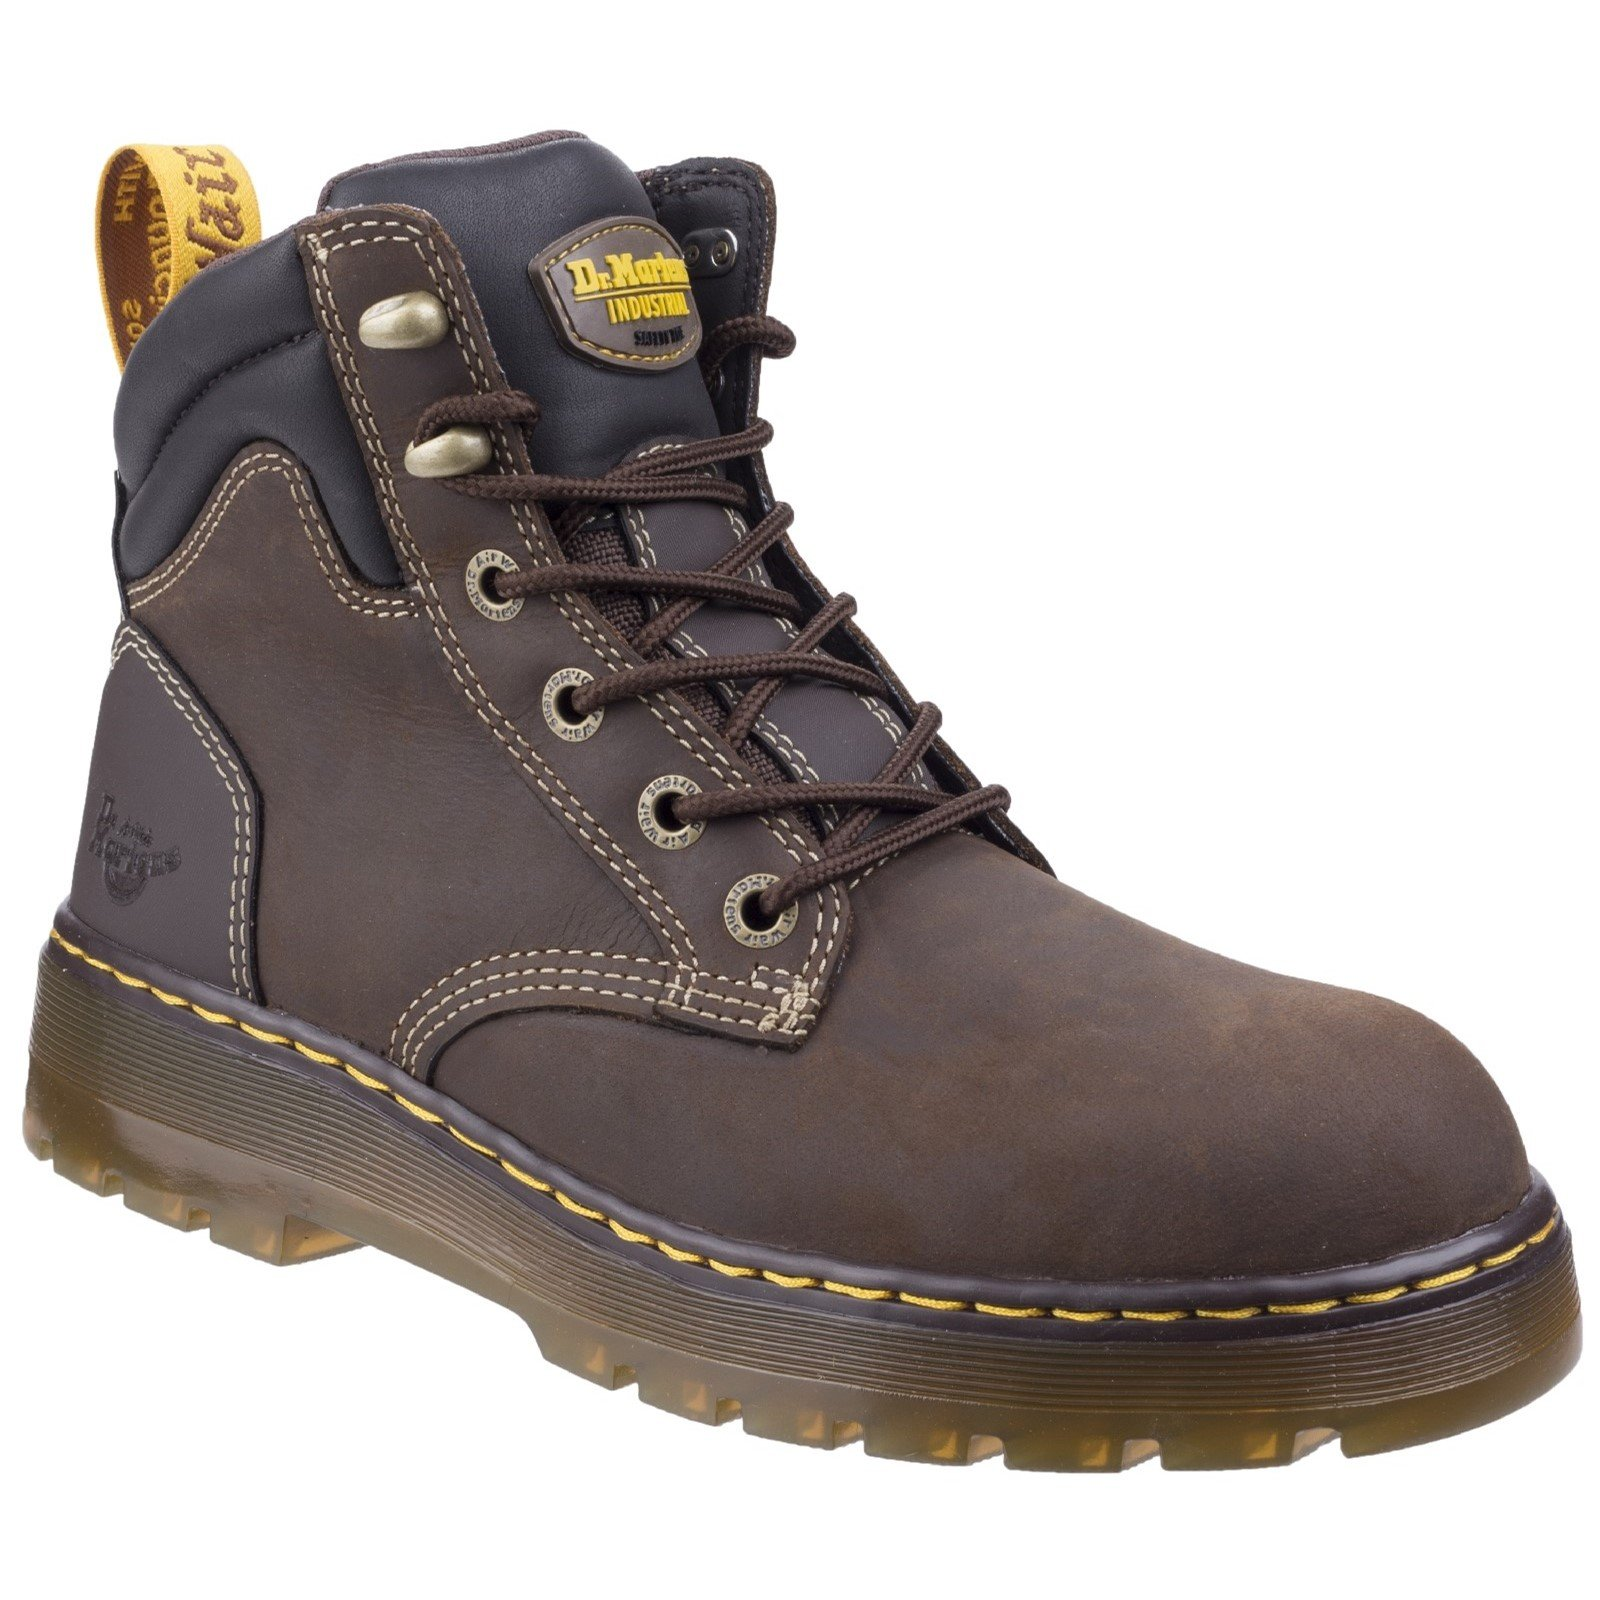 Dr Martens Unisex Brace Hiking Style Safety Boot Various Colours 27702-46606 - Dark Brown Republic 7